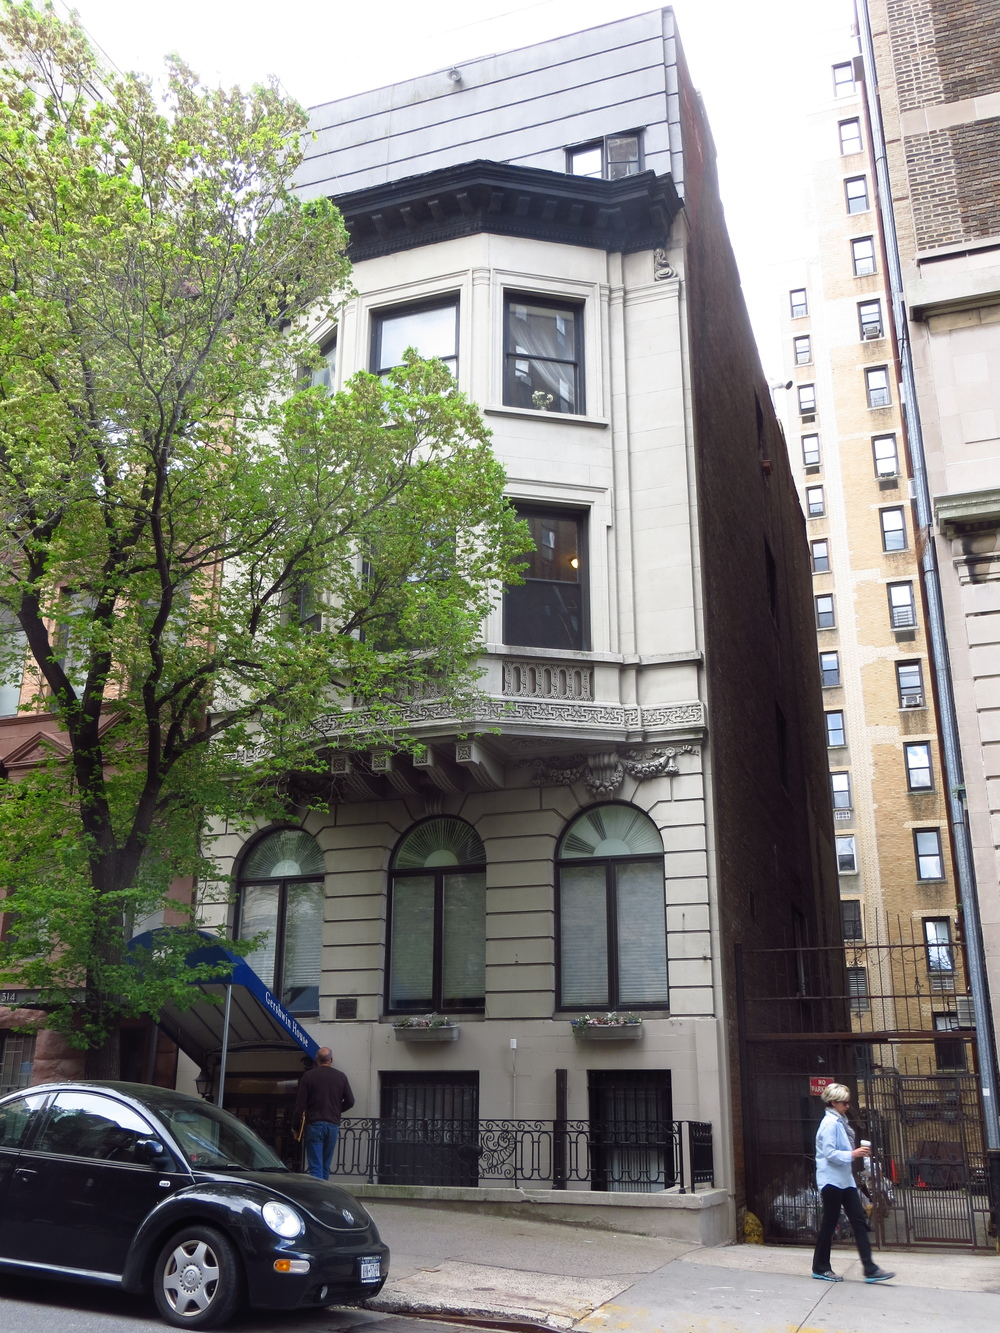 Another Gershwin house